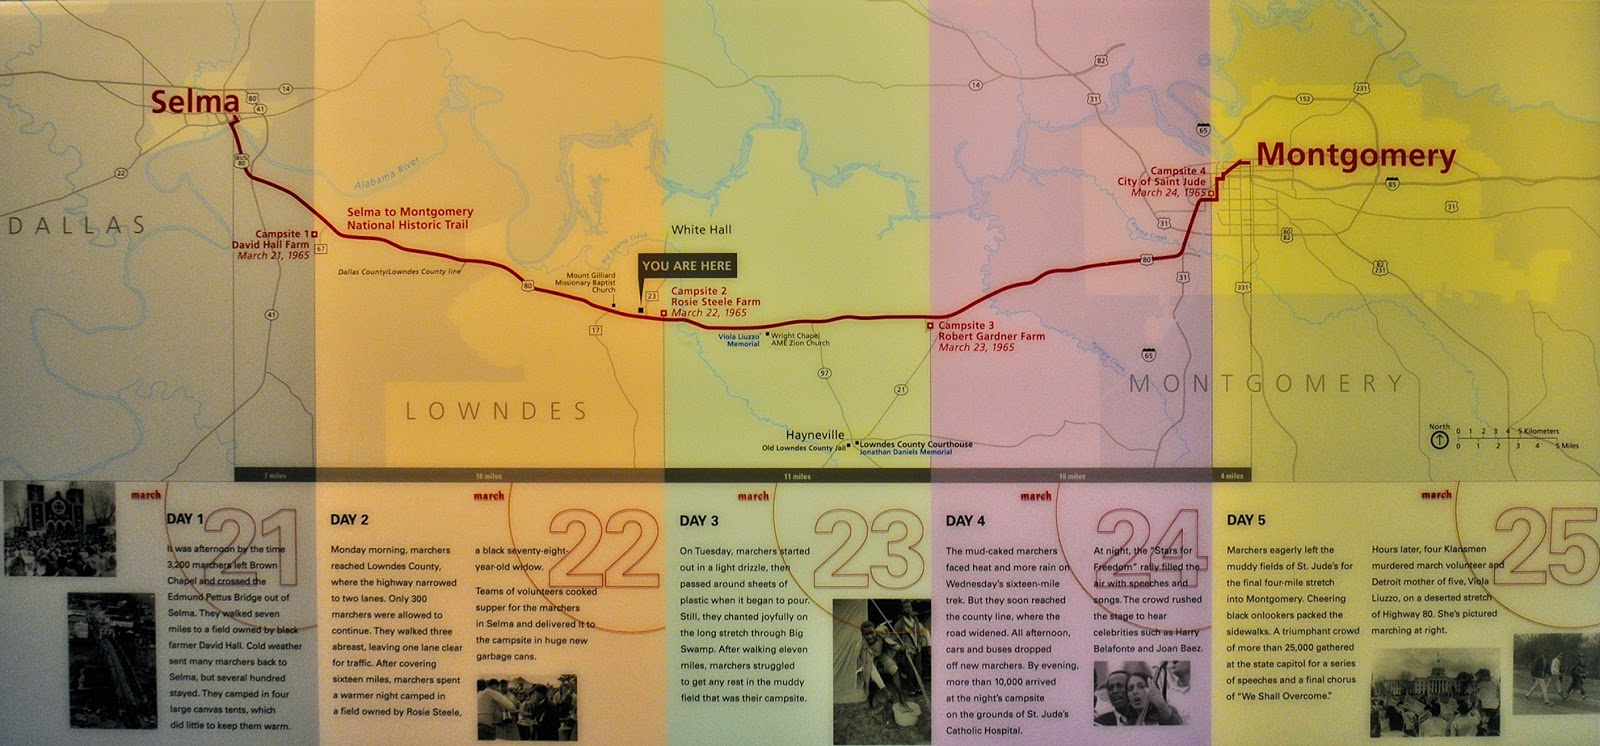 selma to montgomery final march map